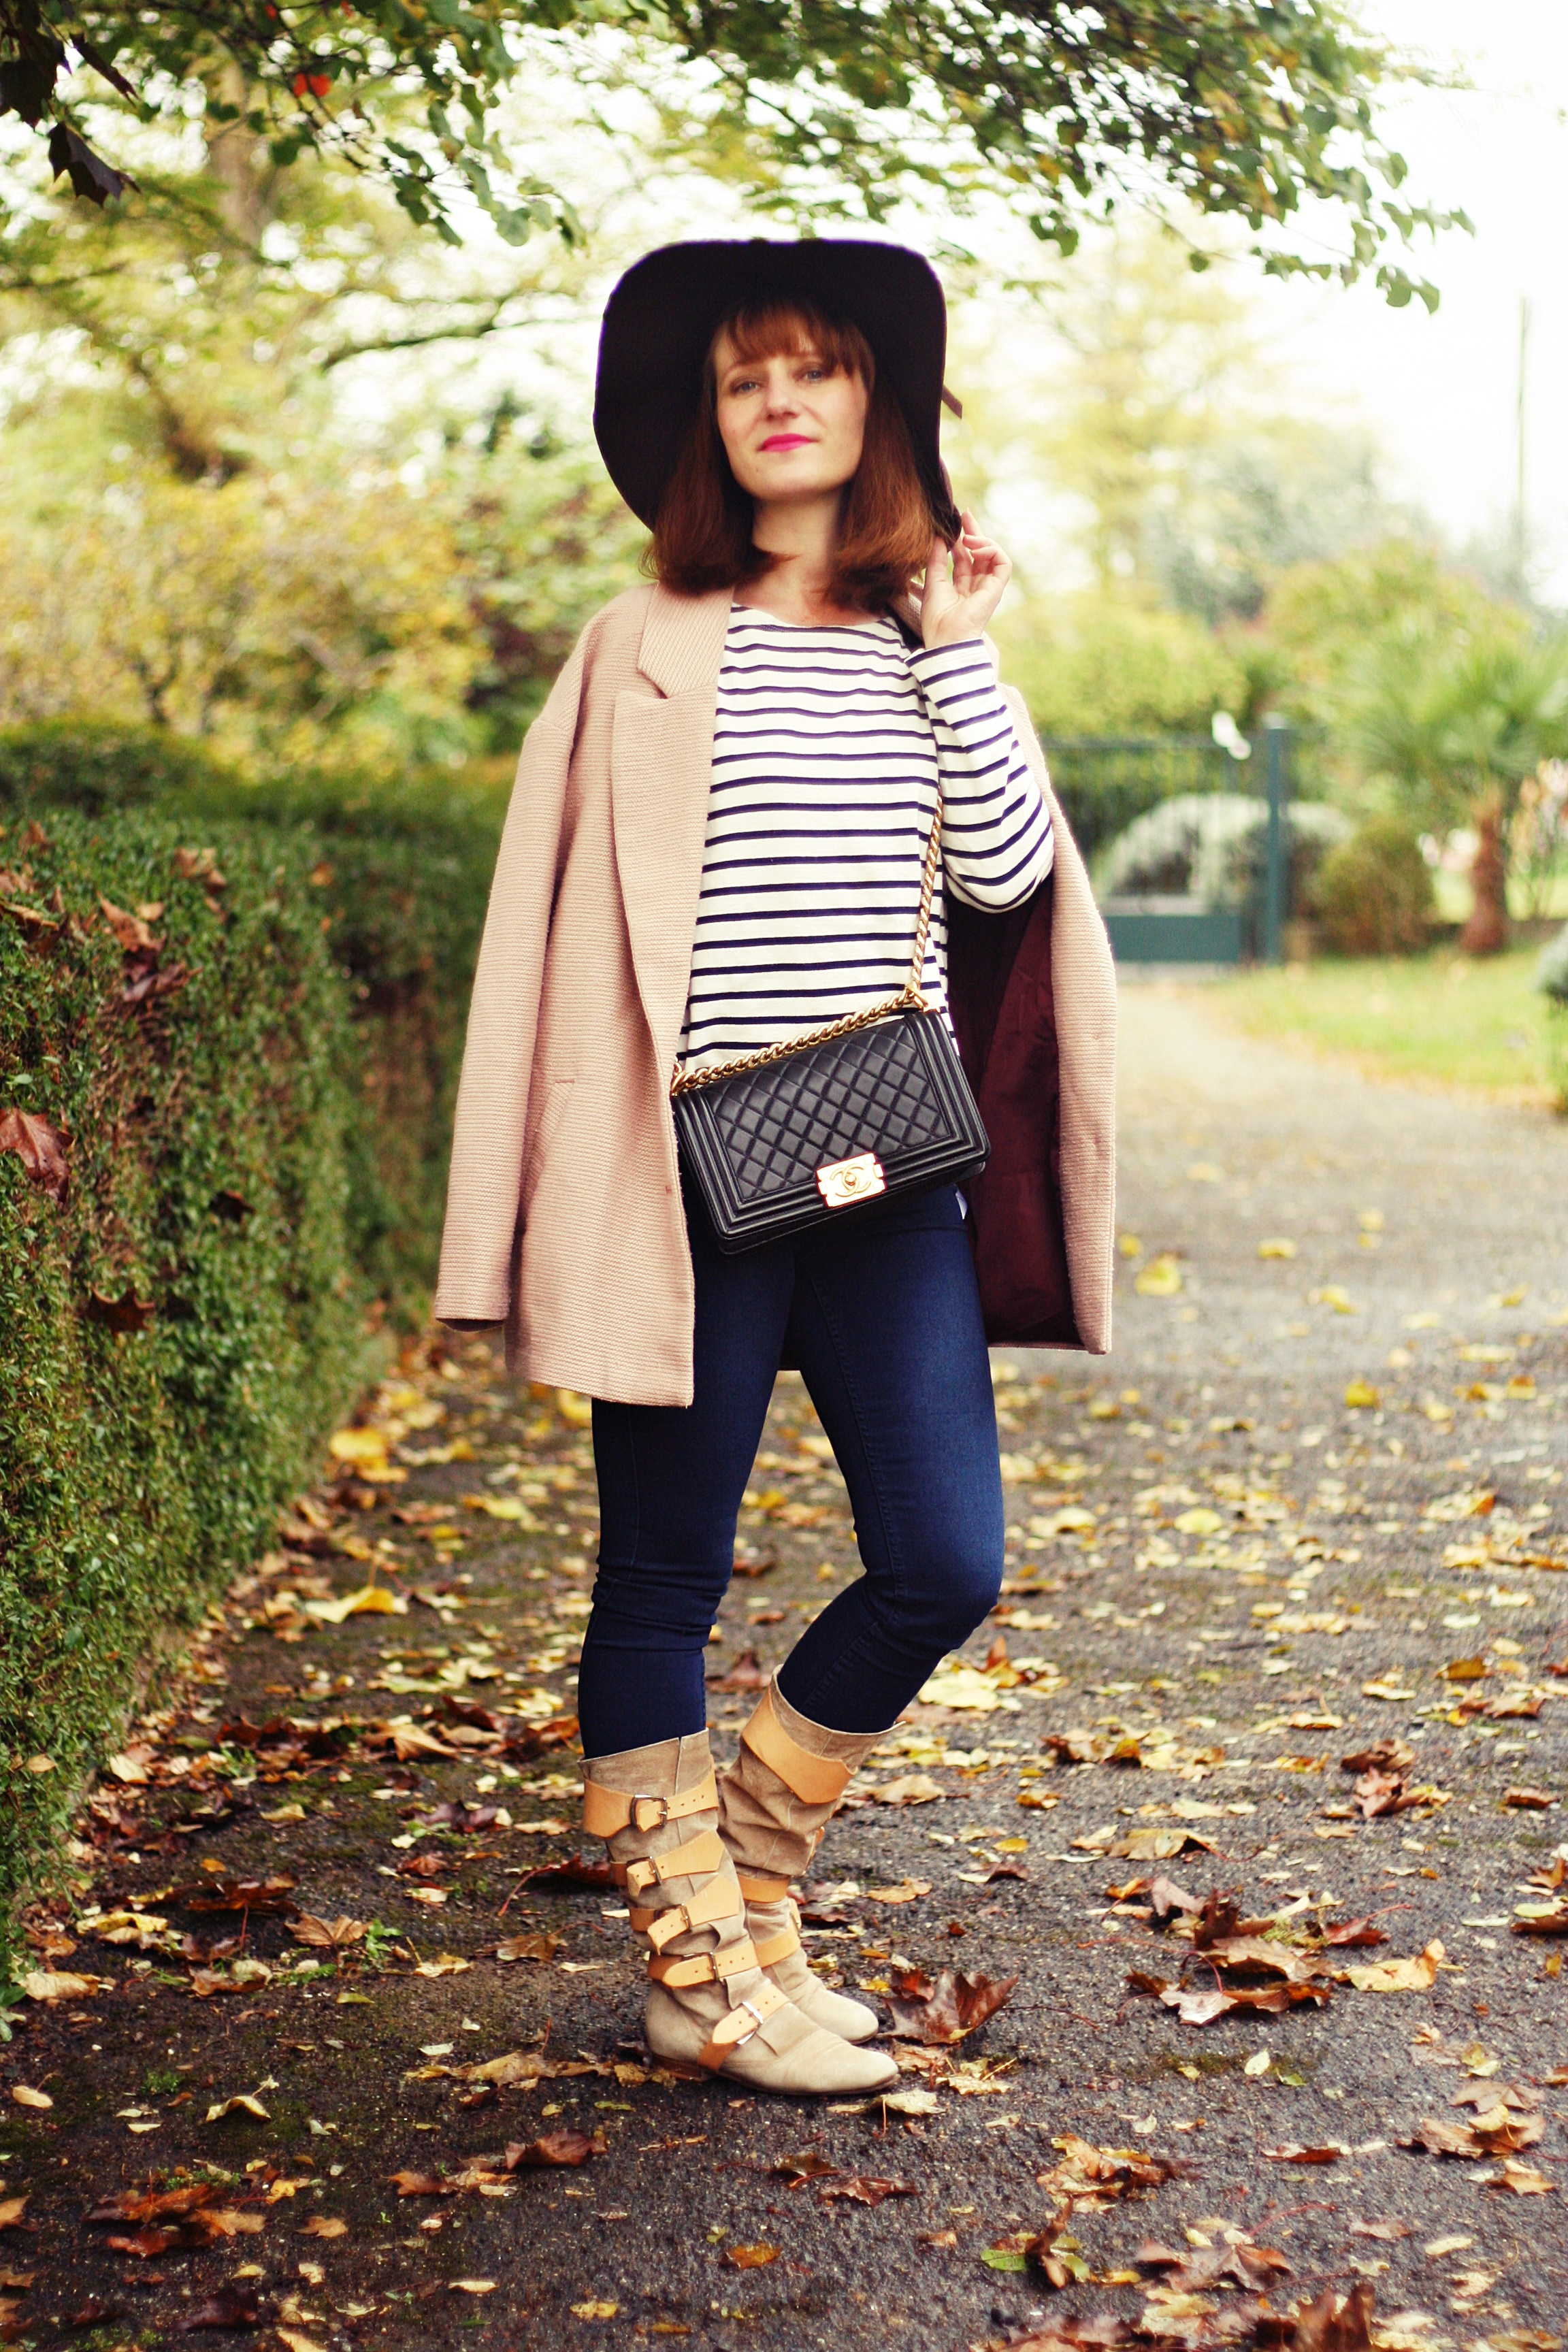 lookmarinière-petit-bateau-pirate-boot-chanel-boy-street-style-blog-mode